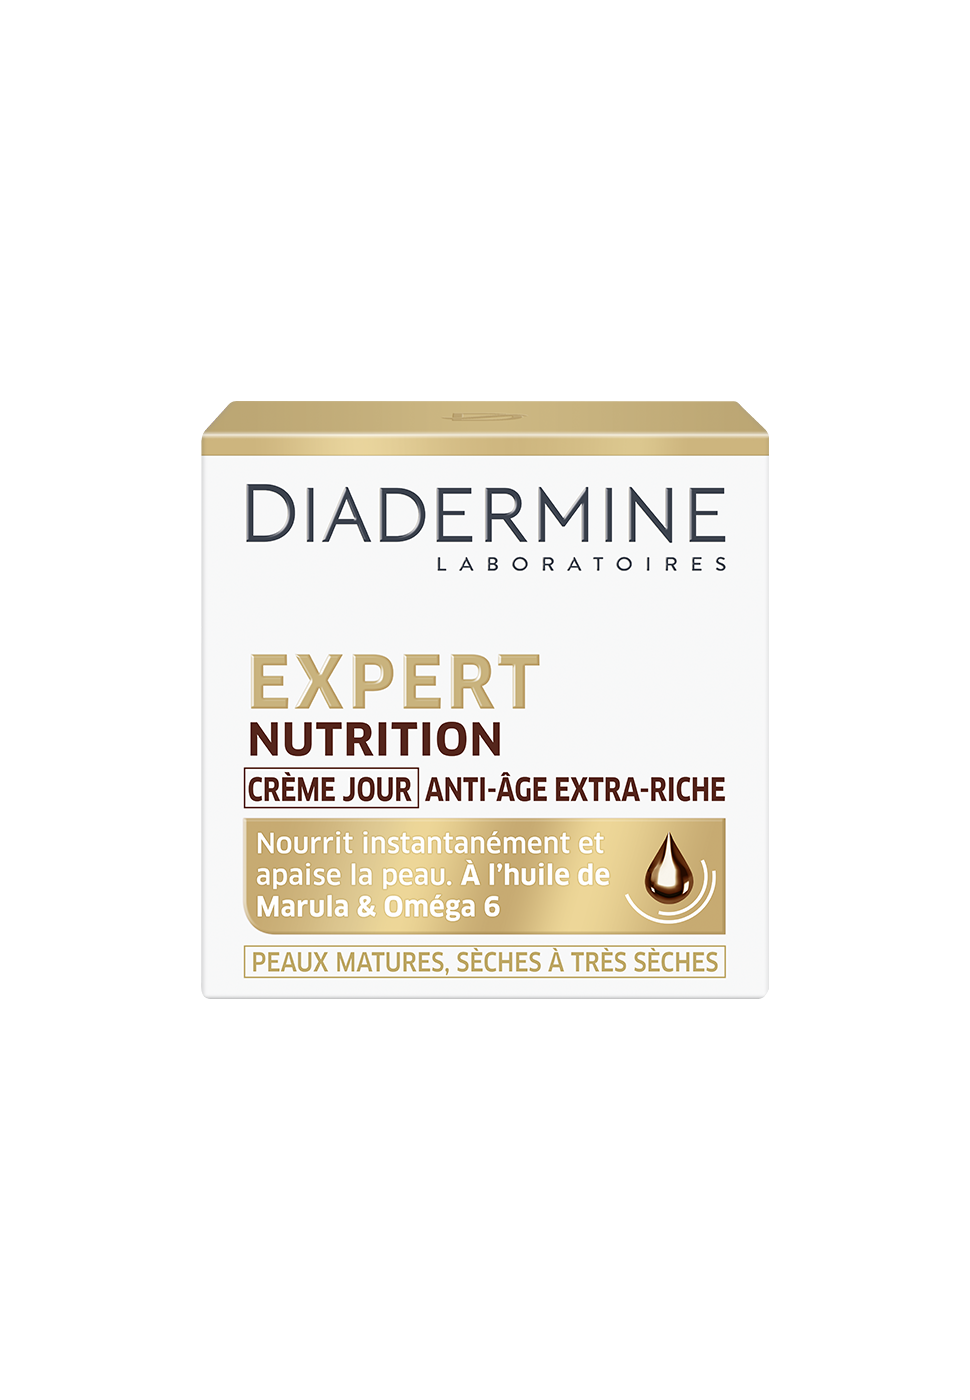 diadermine_expert_nutrition_creme_jour